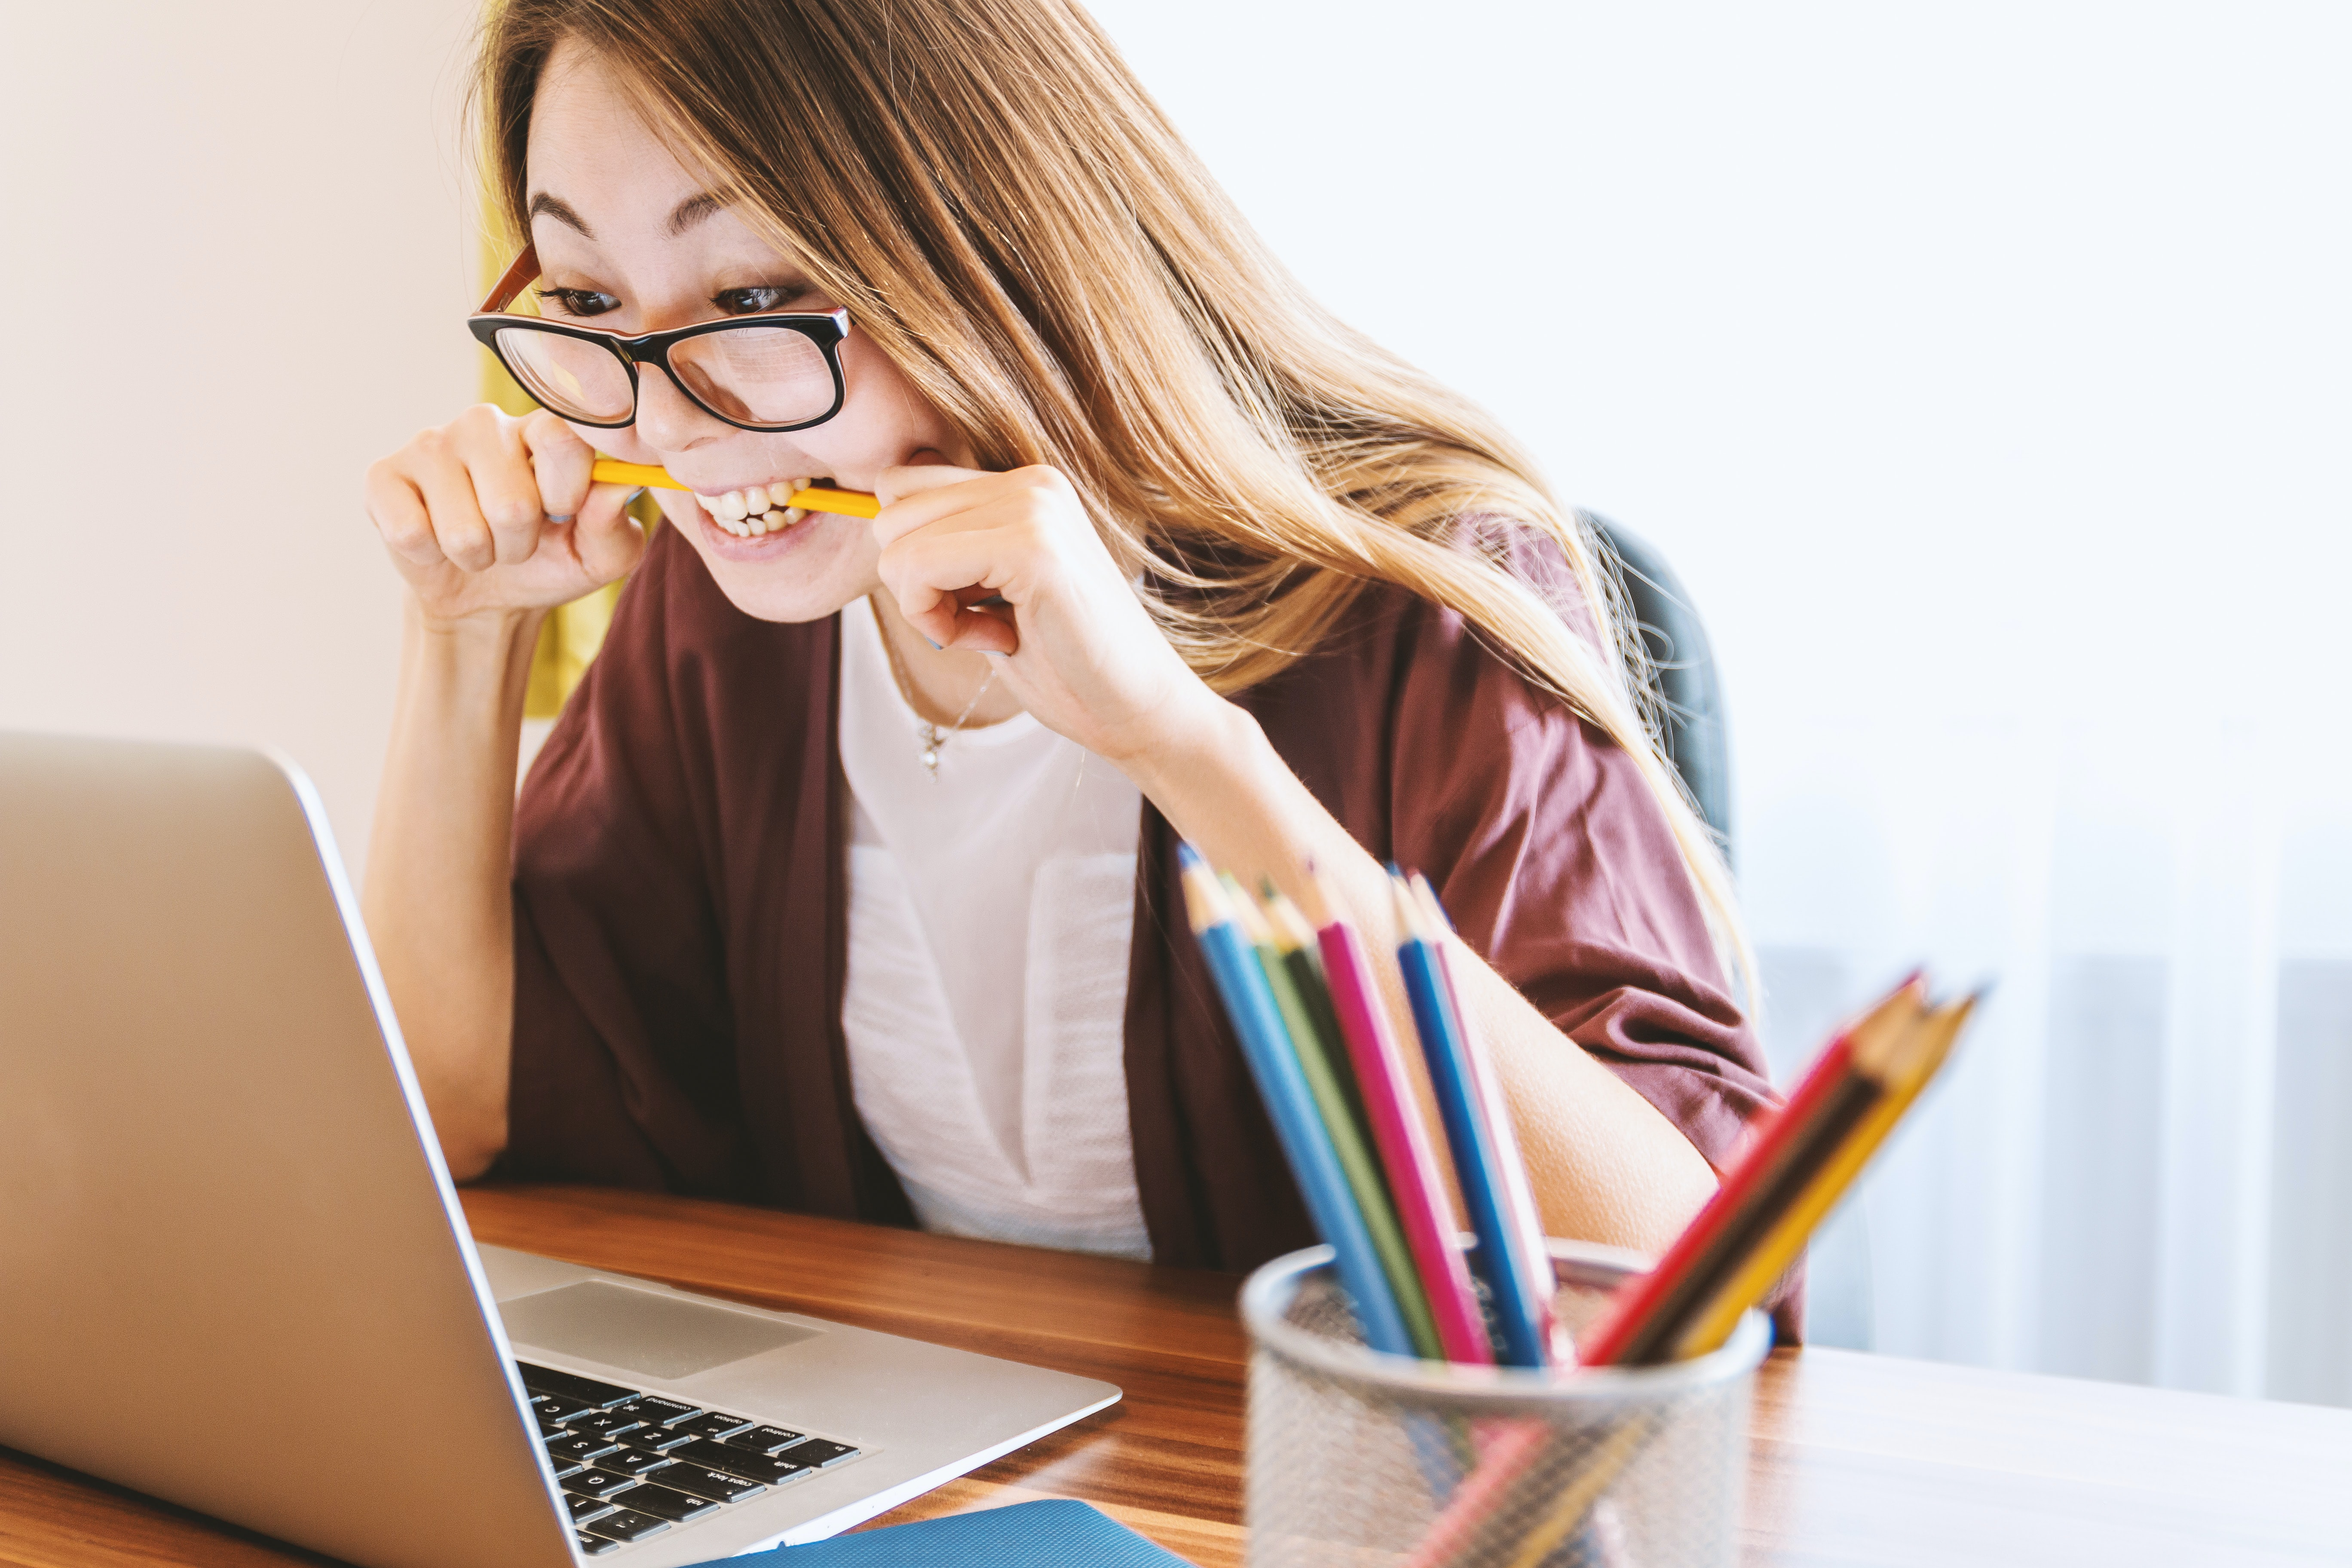 A young lady is looking at her laptop screen whilst sitting at her desk, she is clearly frustrated and is biting on a pencil. On her desk is a pot full of coloured pencils.